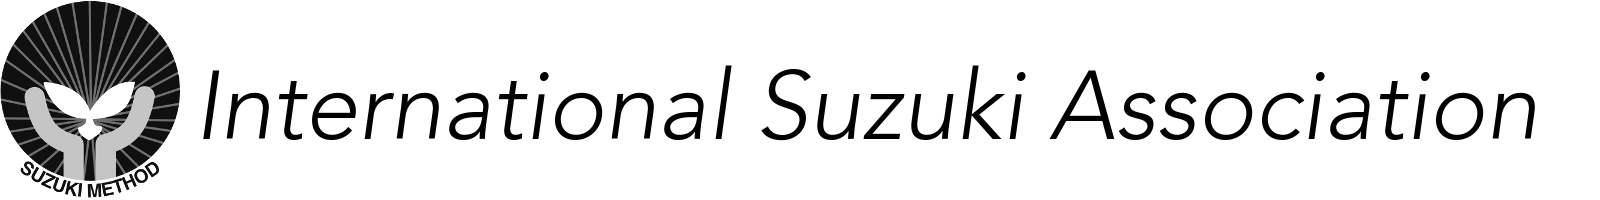 International Suzuki Association